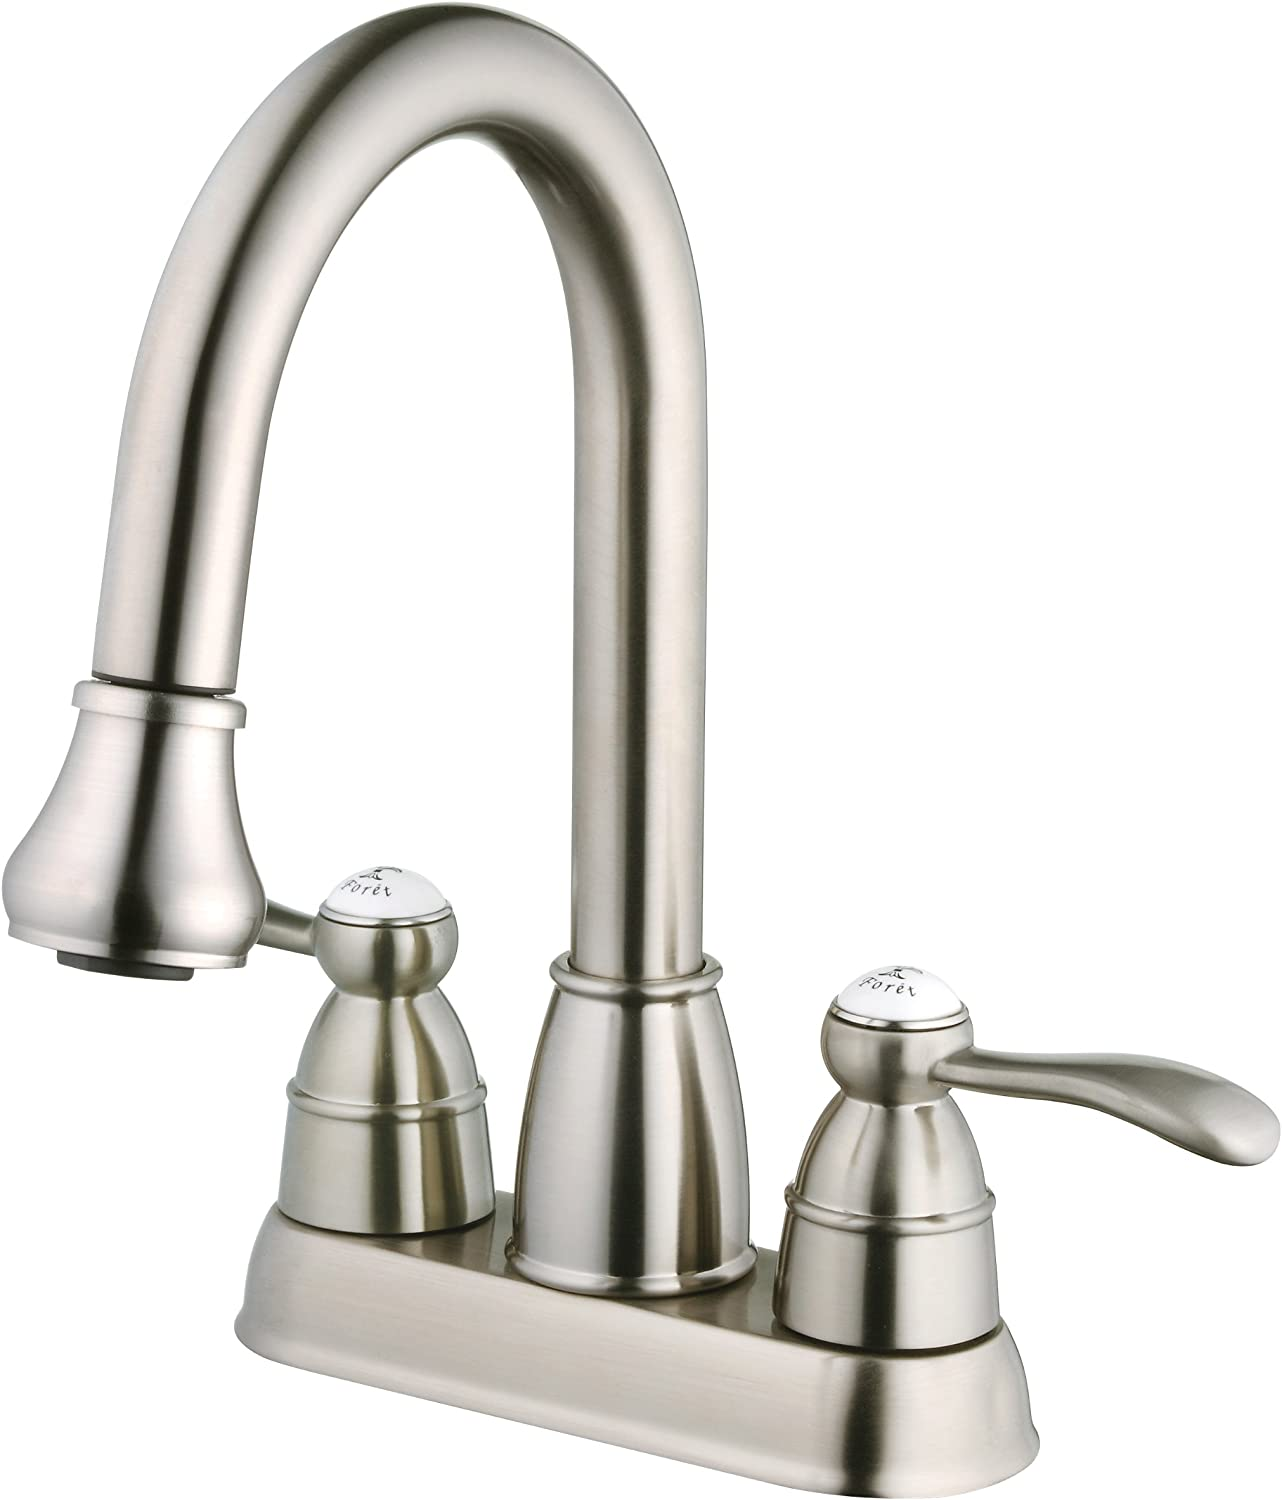 Belle Foret Bfn60001ss Pull Down Spray Laundry Faucet Stainless Steel Touch On Kitchen Sink Faucets Amazon Com